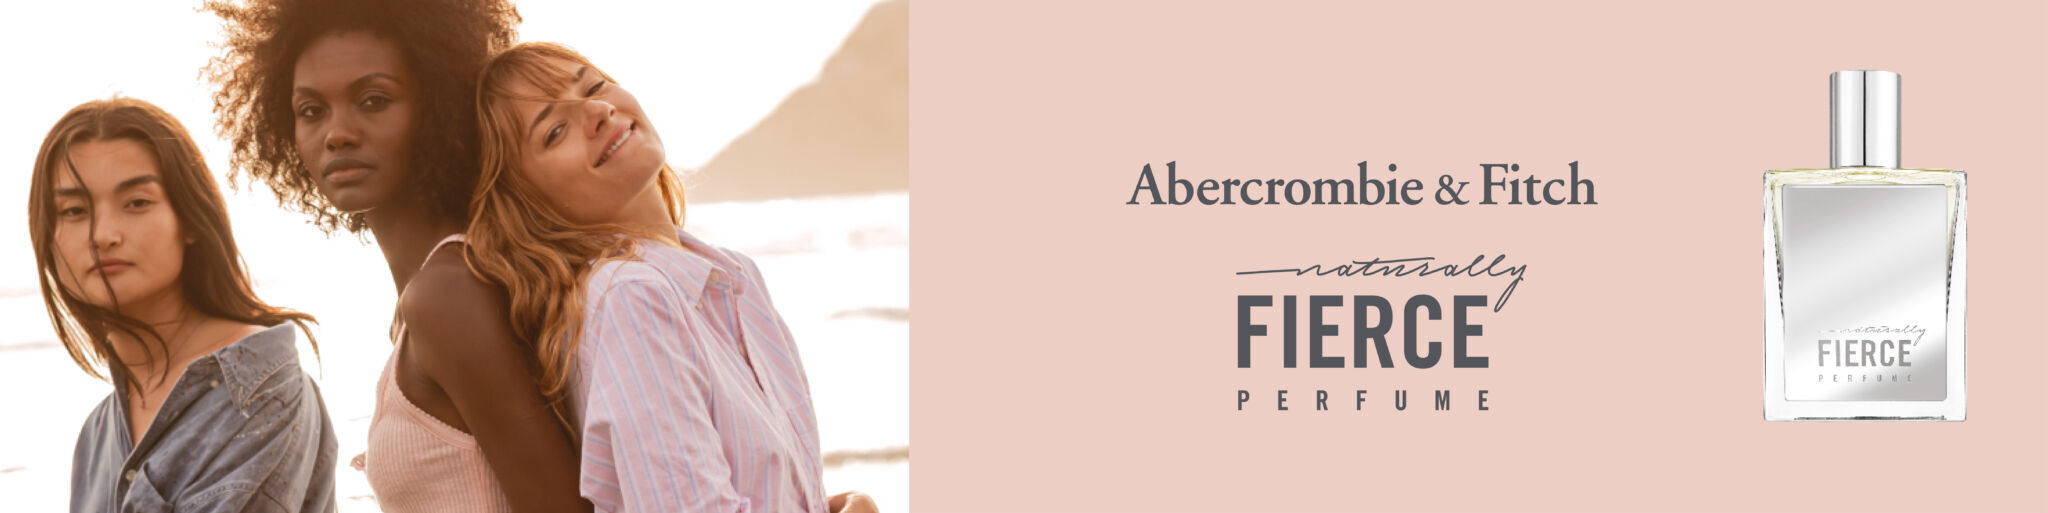 Abercrombie & Fitch Naturally Fierce